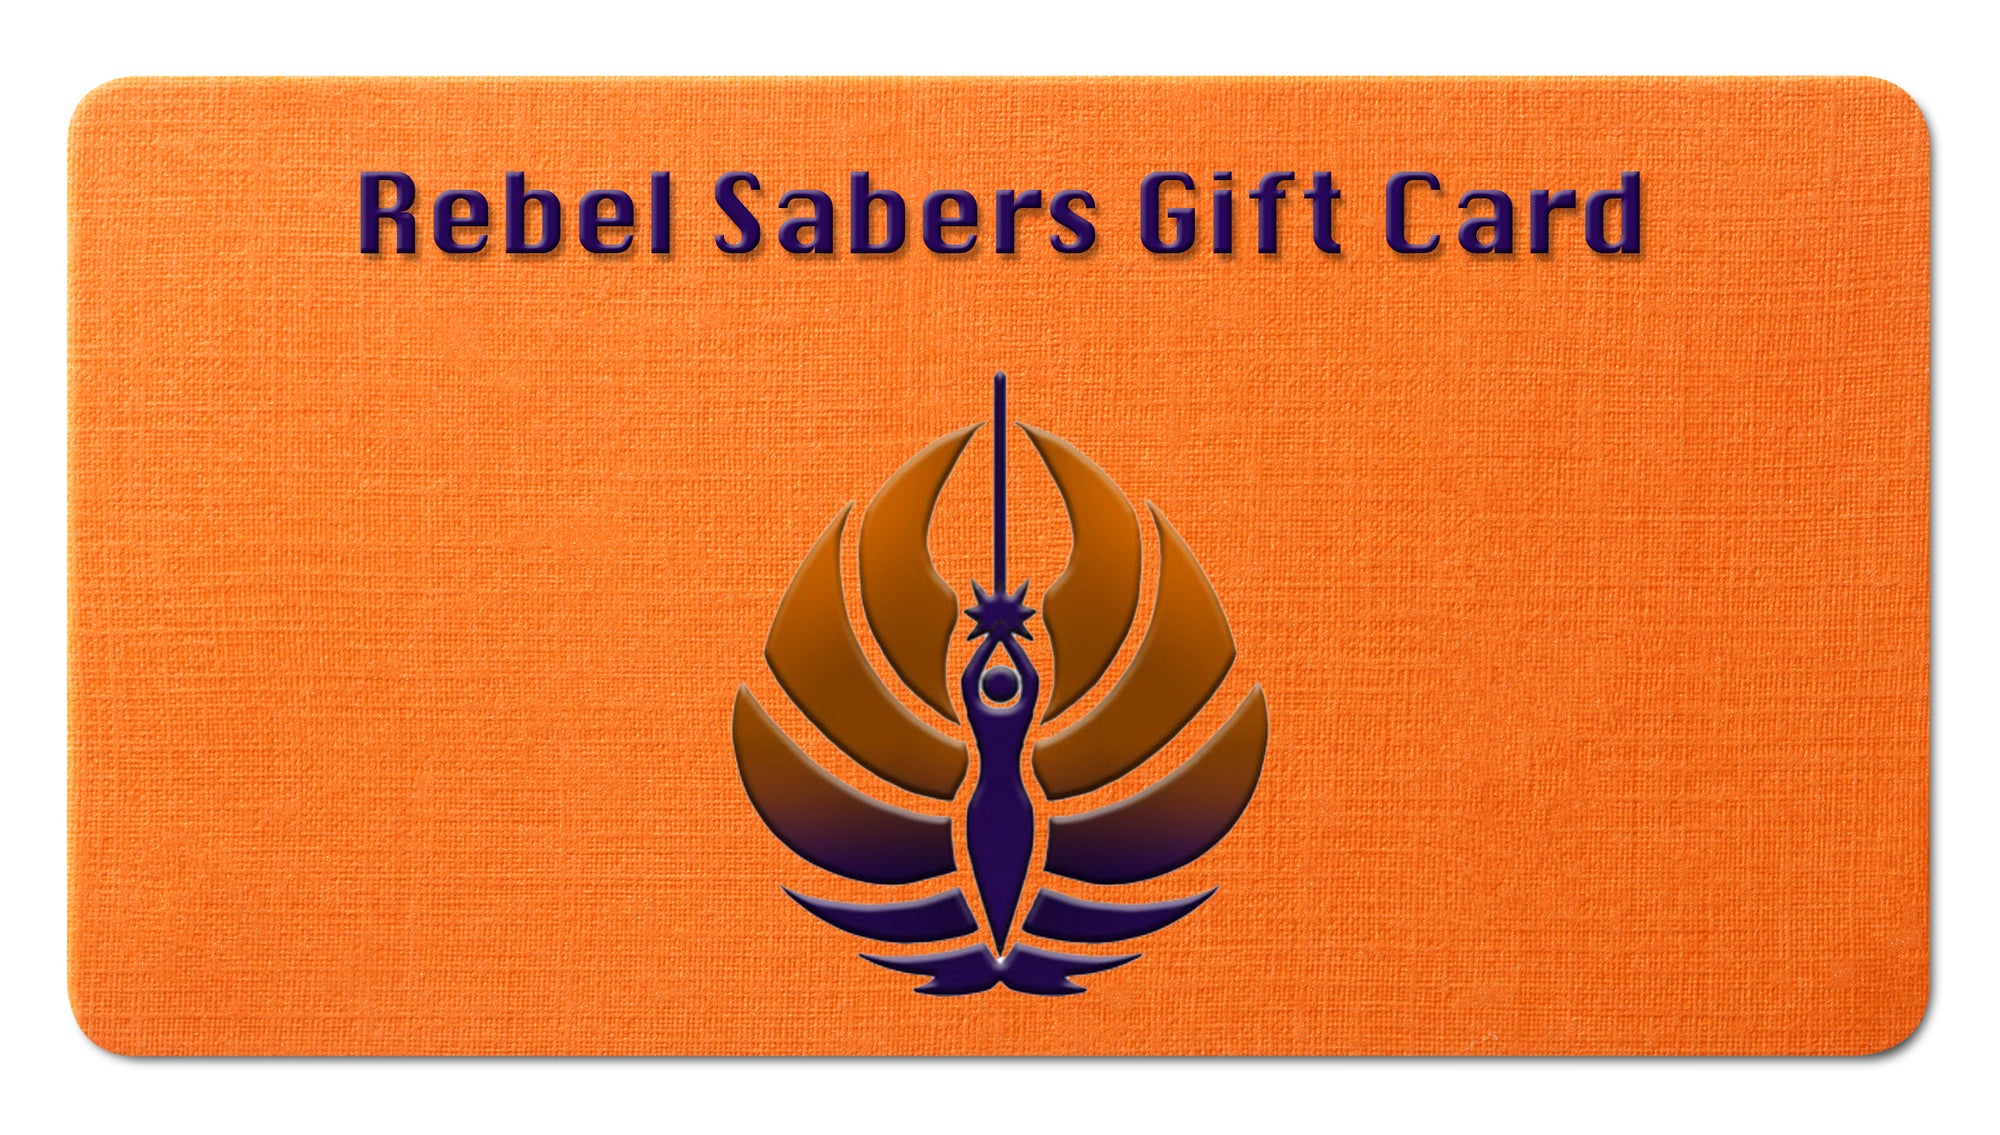 Rebel Sabers Gift Cards